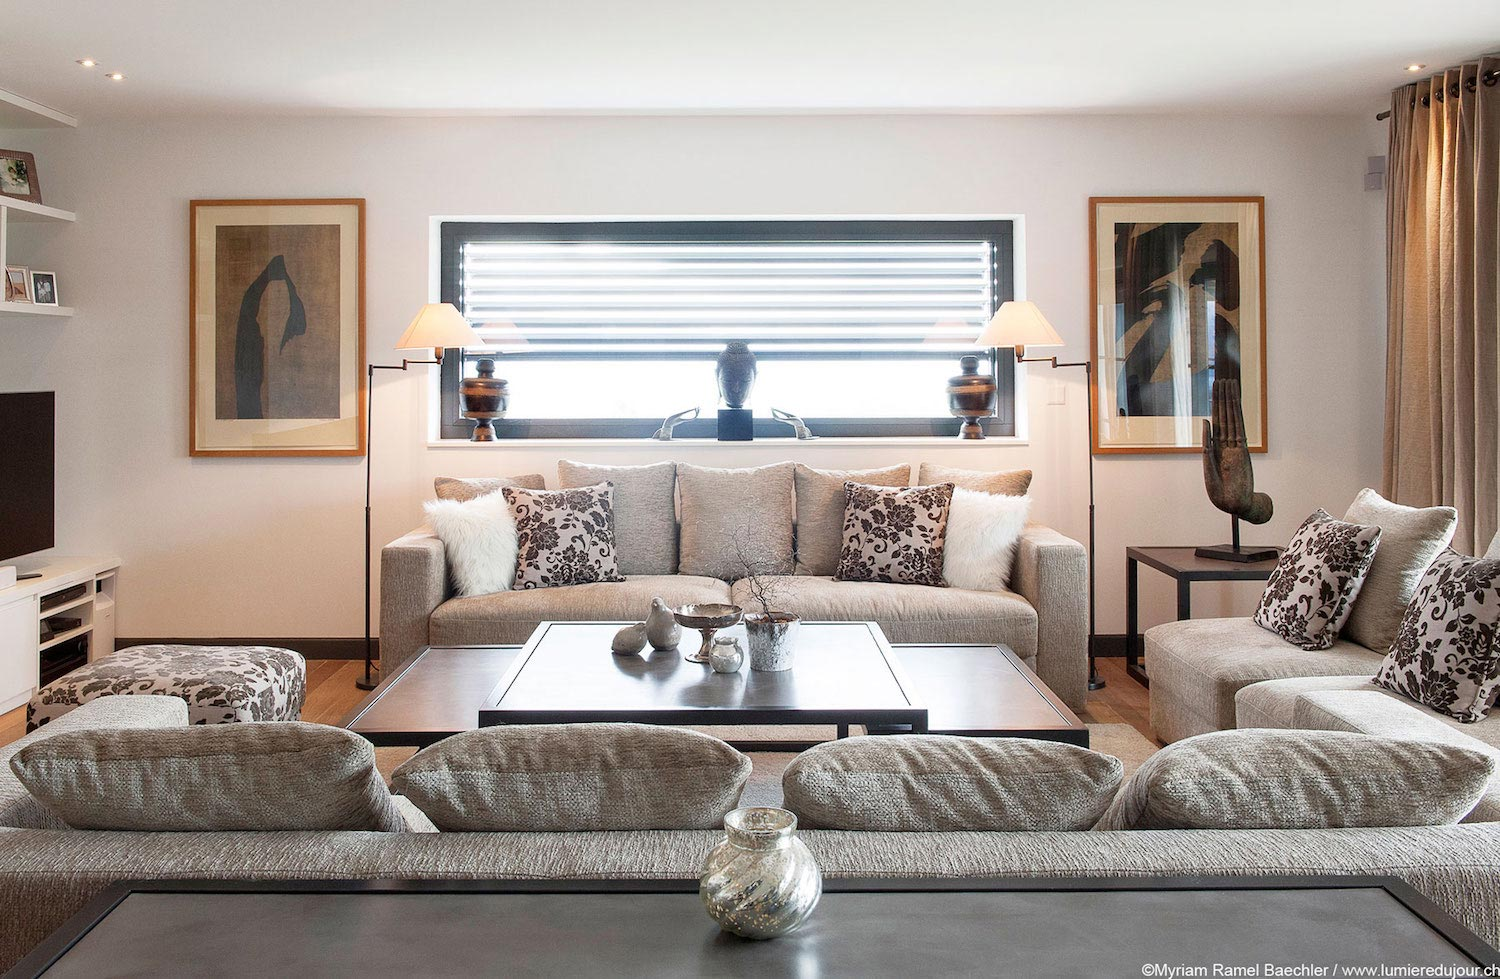 Home in le mont sur lausanne establishing the connection between modern and rustic caandesign - Connection between lifestyle home design ...